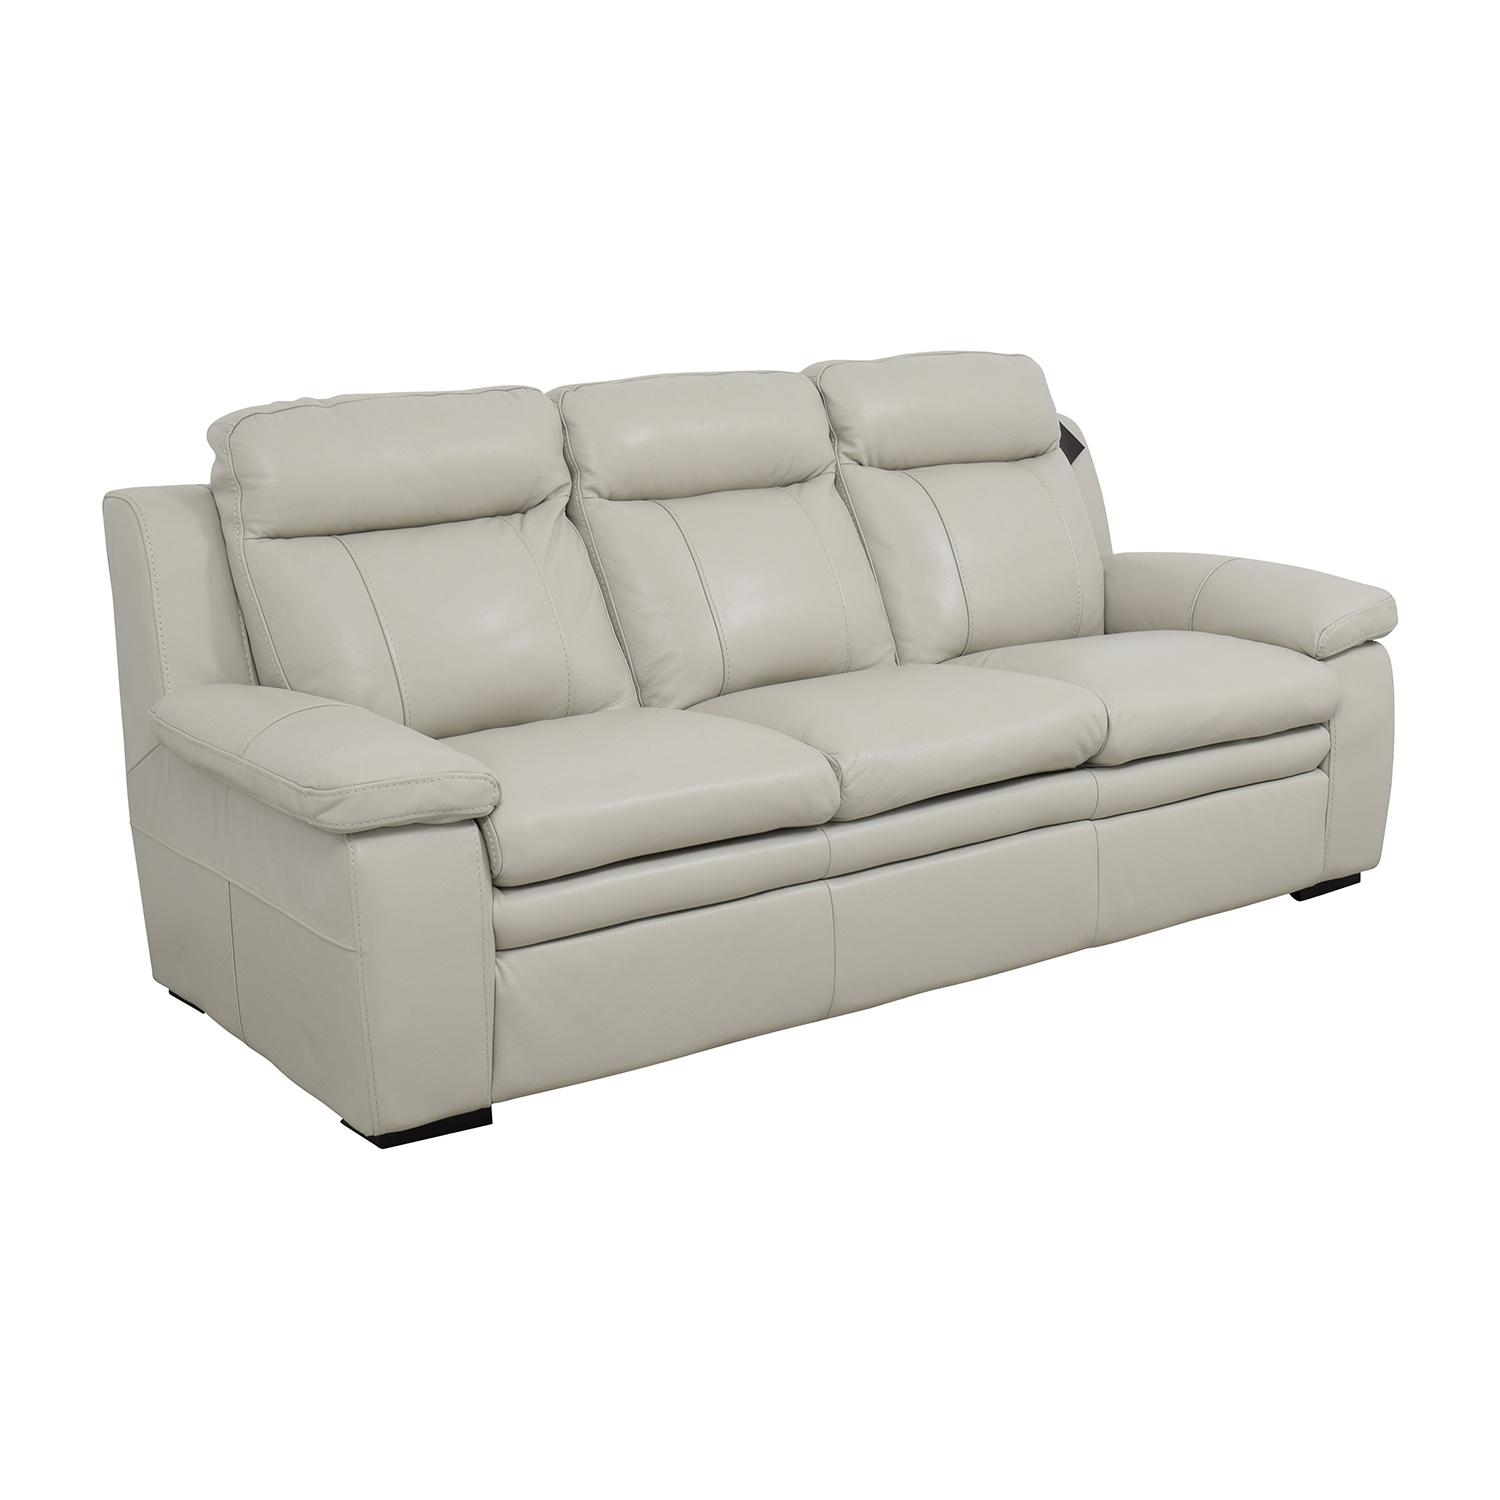 10 Best Collection Of Off White Leather Sofas: 20 Best Collection Of Macys Sofas